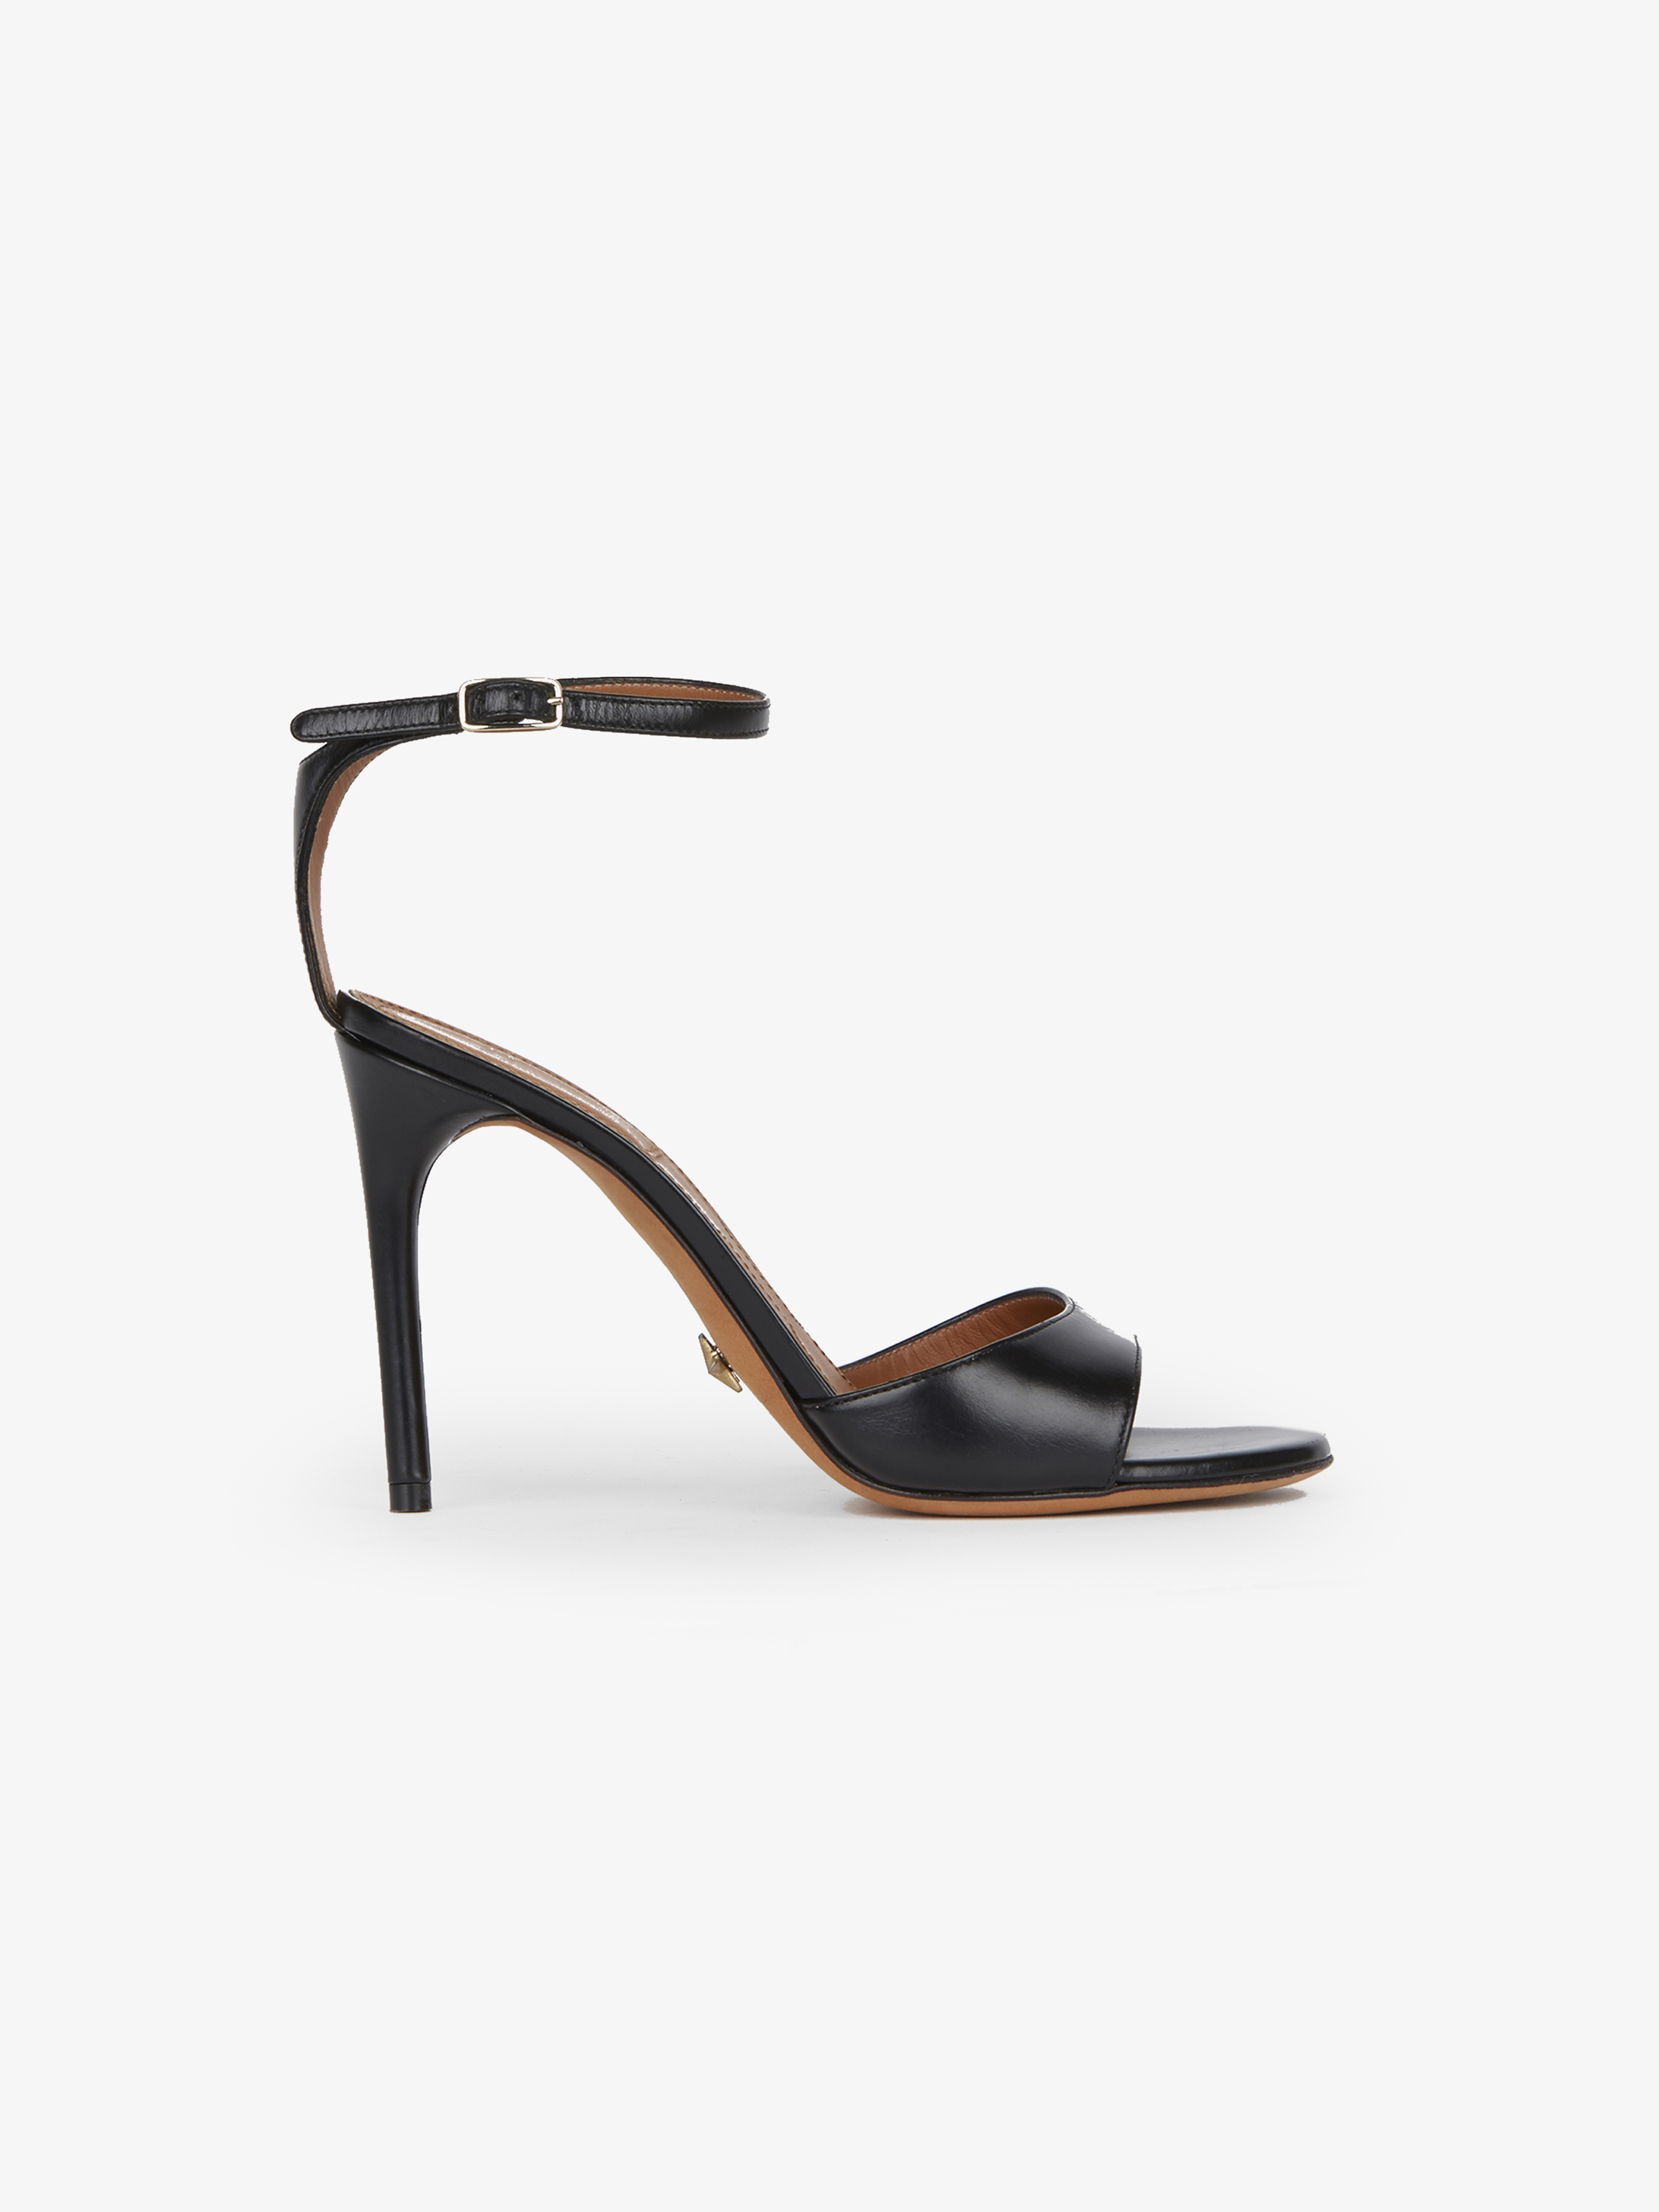 Classic sandals in smooth leather